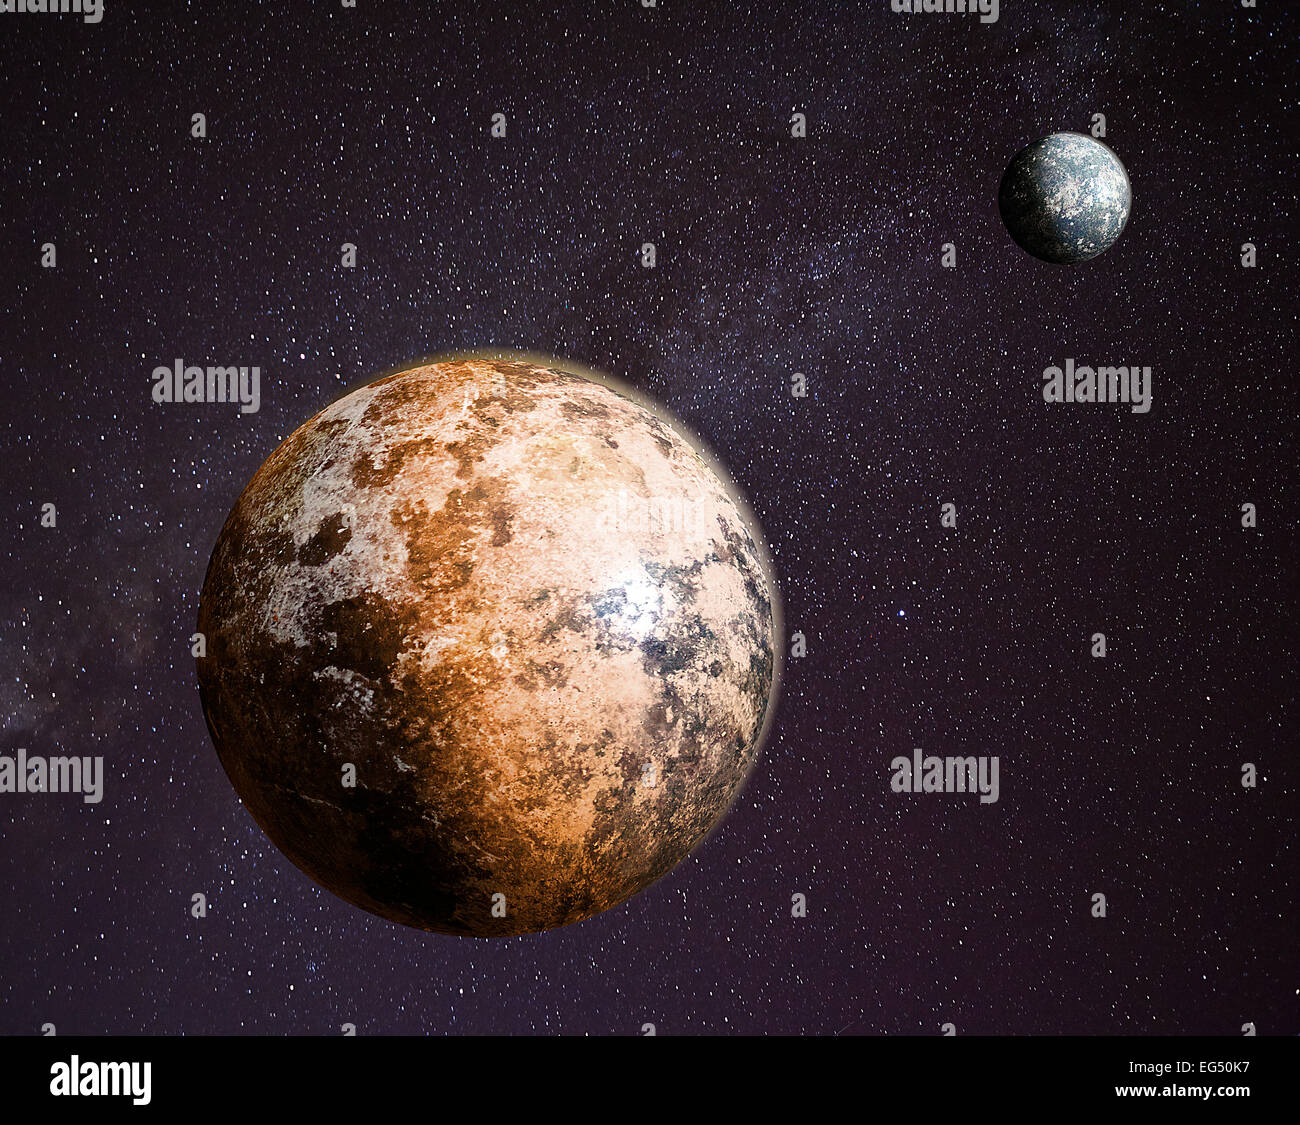 Pluto and Charon - Visualization - Stock Image